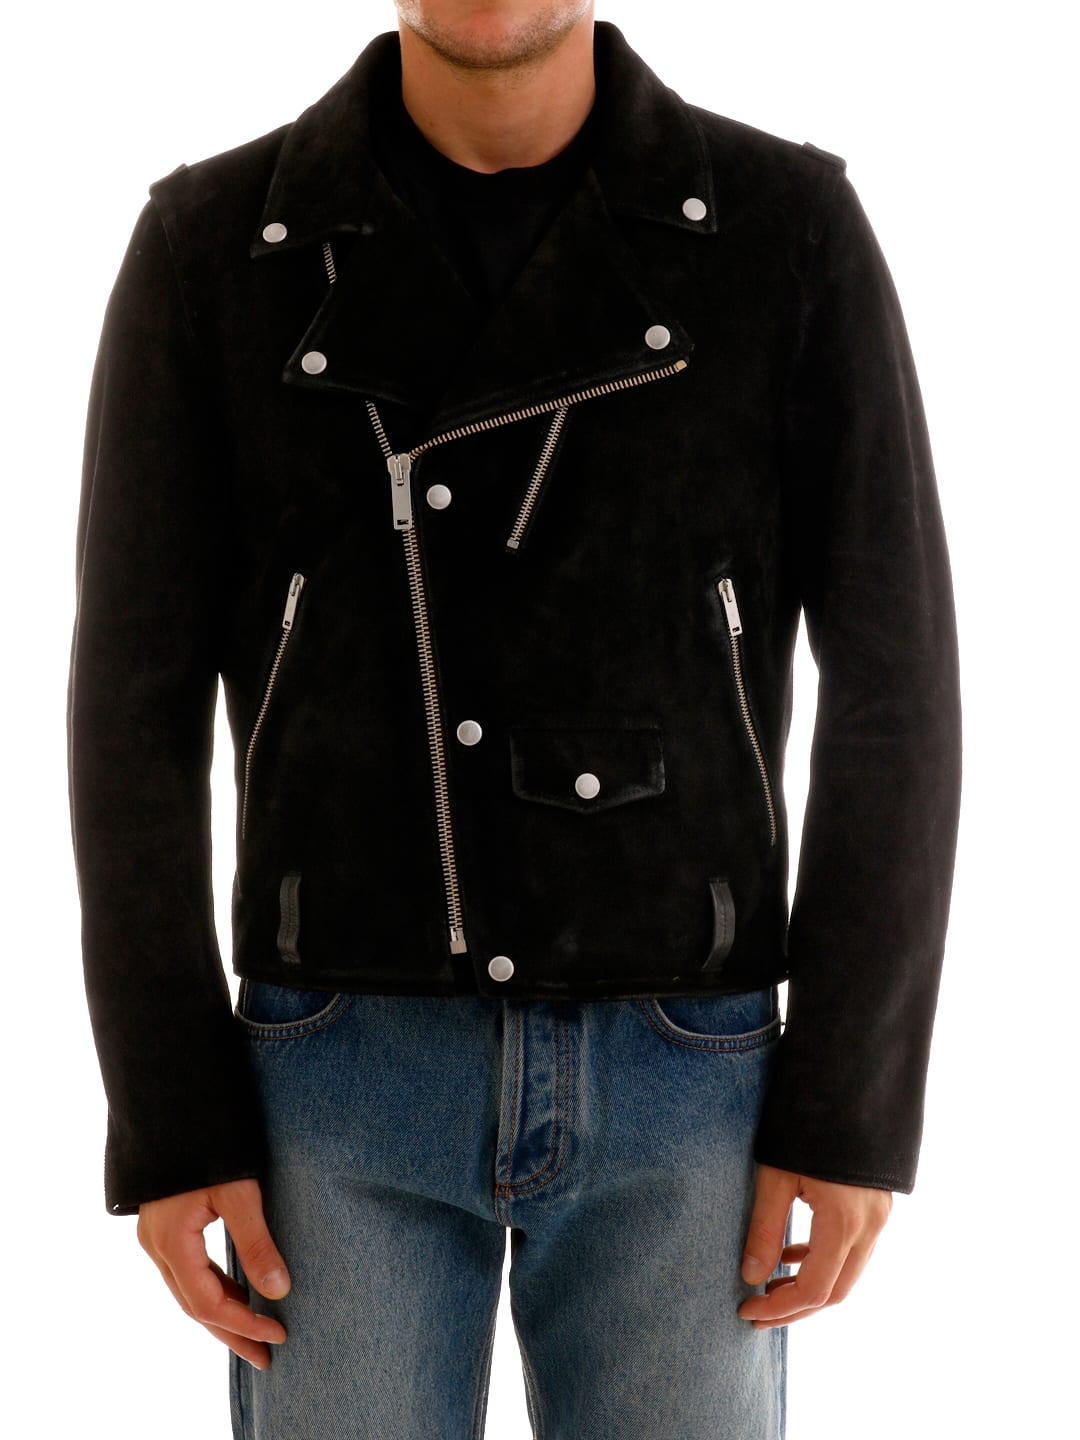 Black leather jacket with oblique zip closure. The model is 1. 85 cm tall and wears size 48Composition: 100% Leather